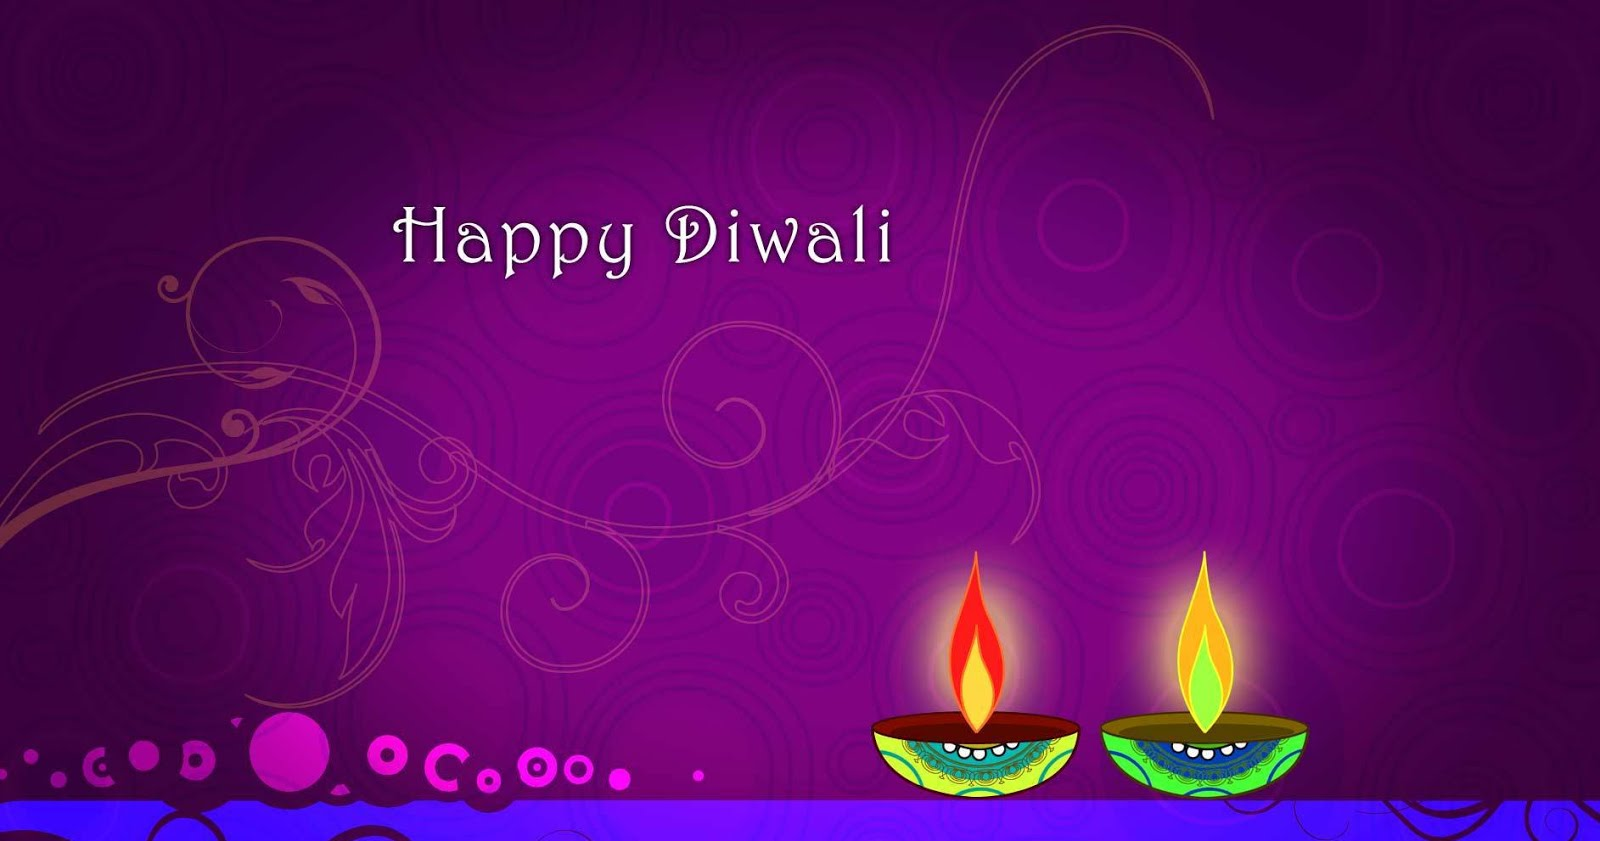 we wish you a very happy diwali and believe you will like our collection of diwali 2016 hd wallpapers in high resolution